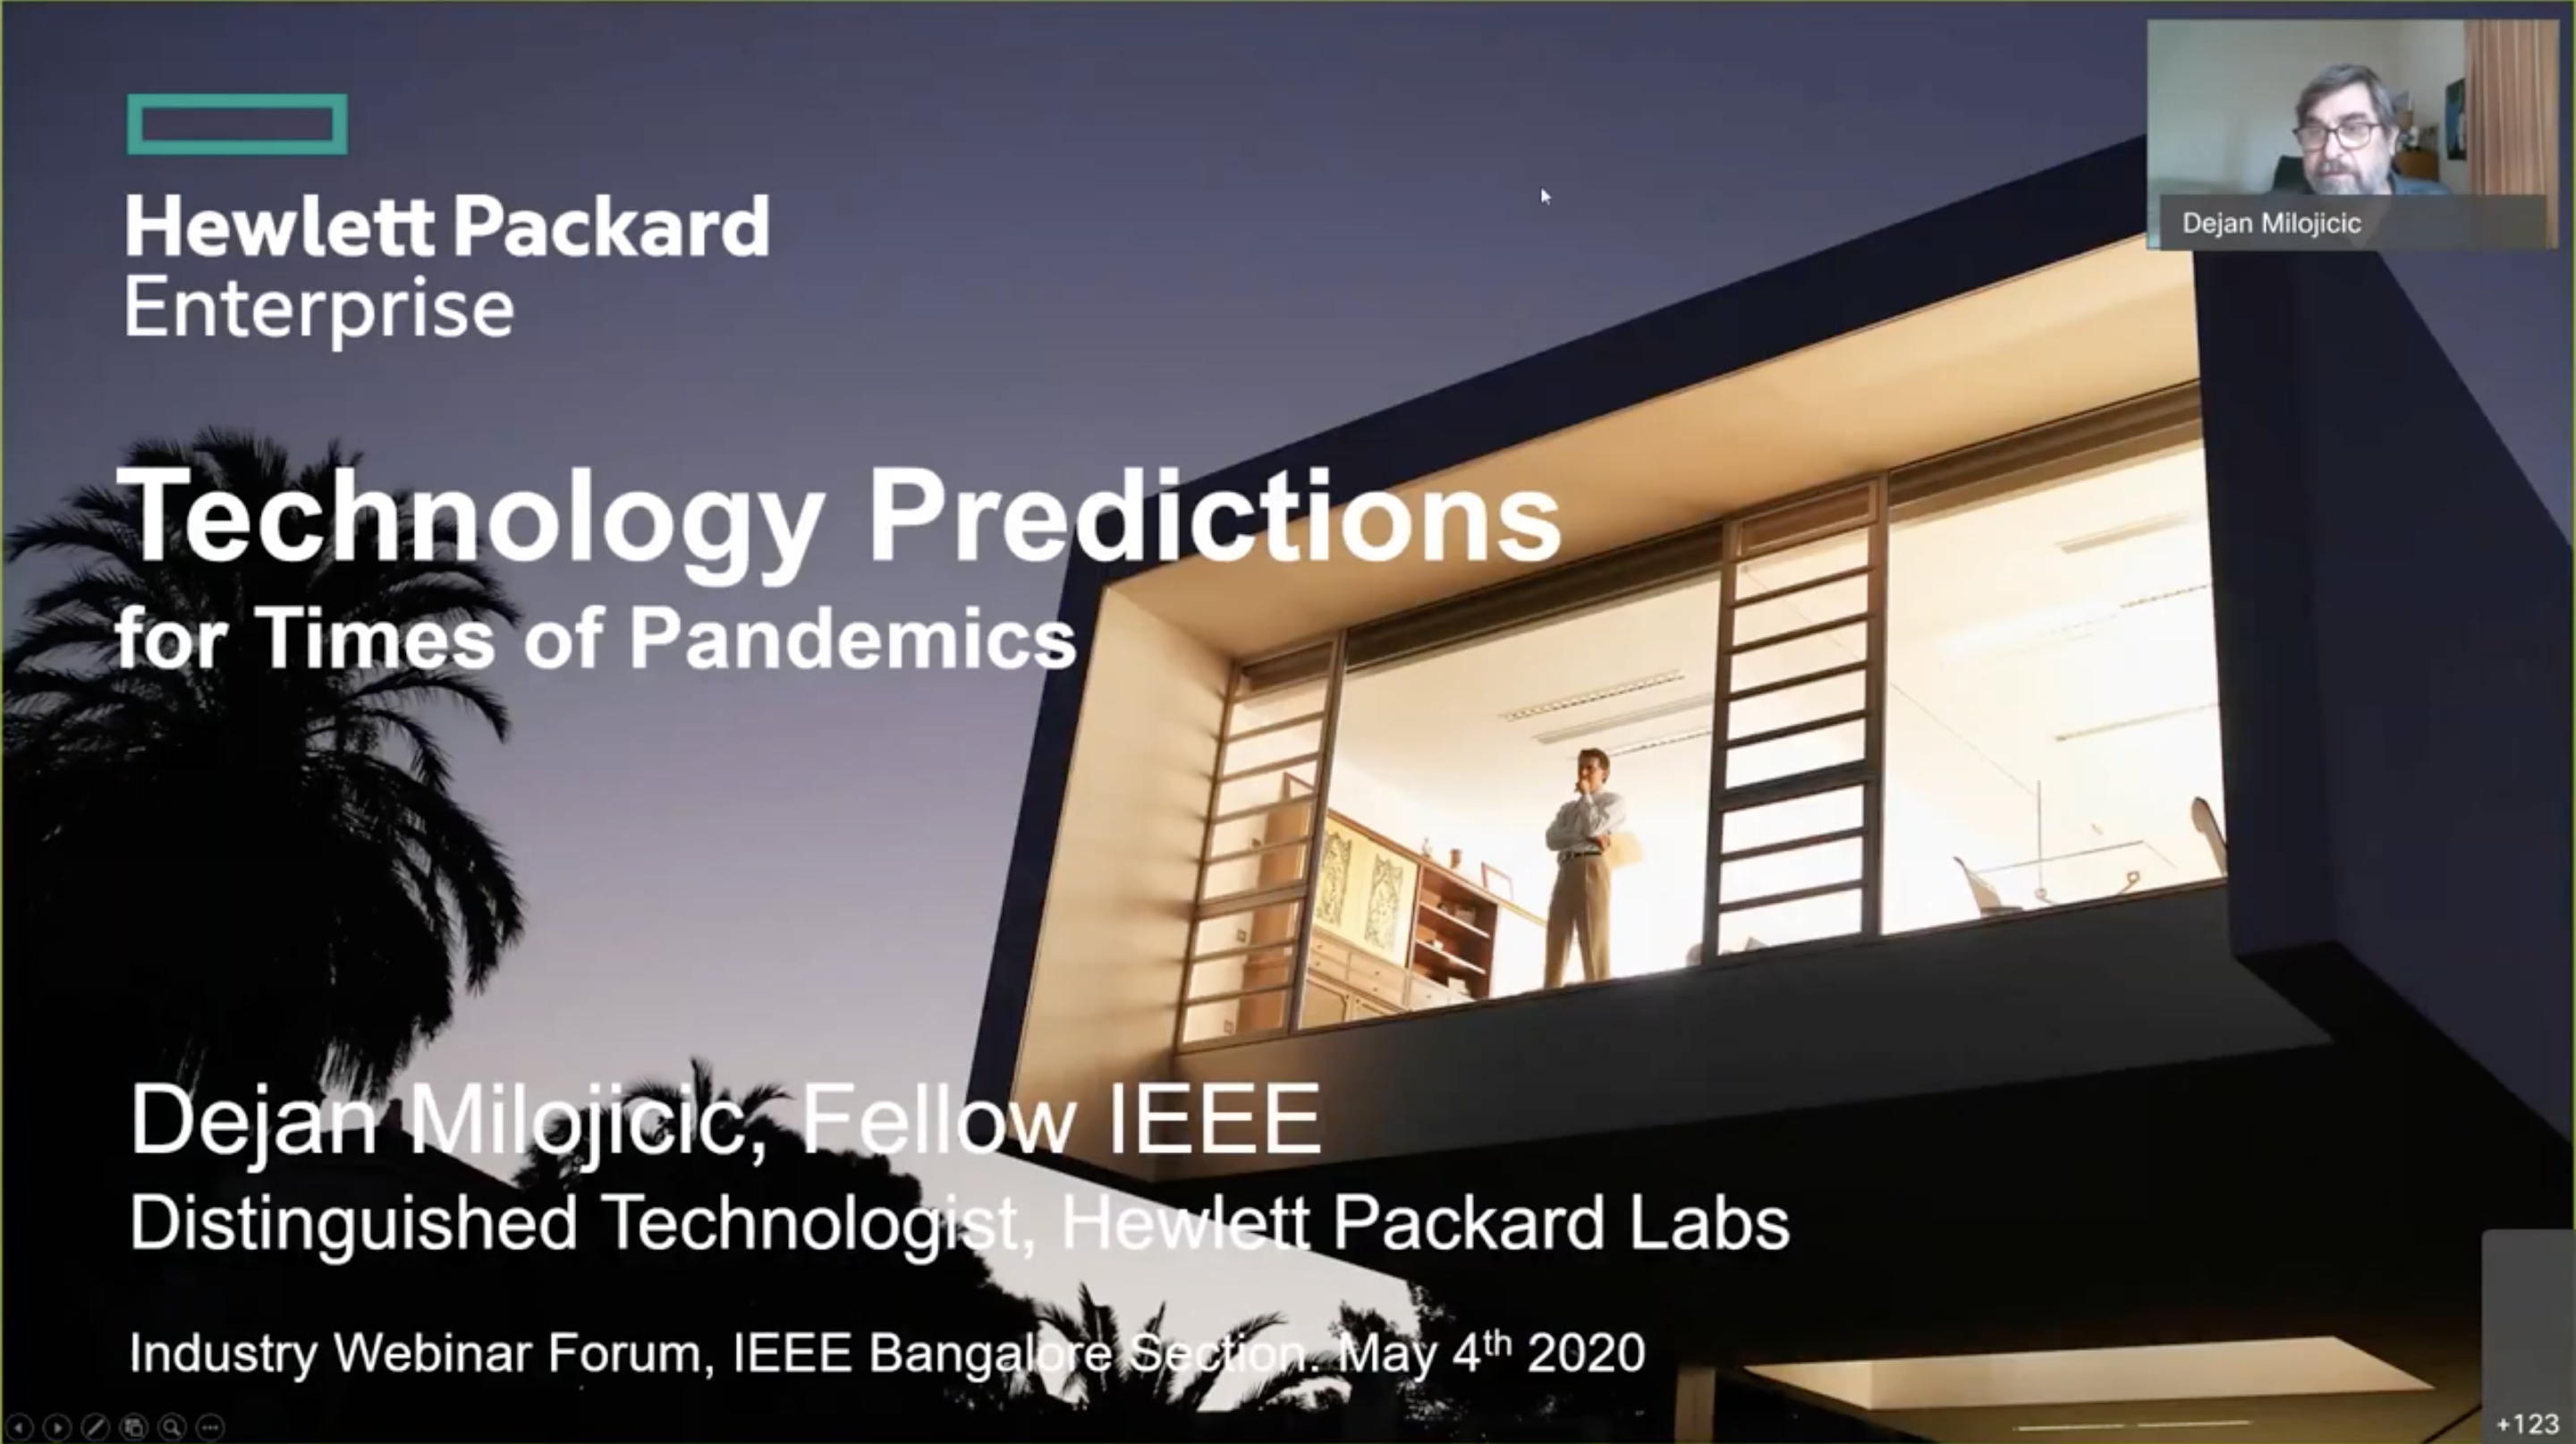 Technology Predictions for Times of Pandemics